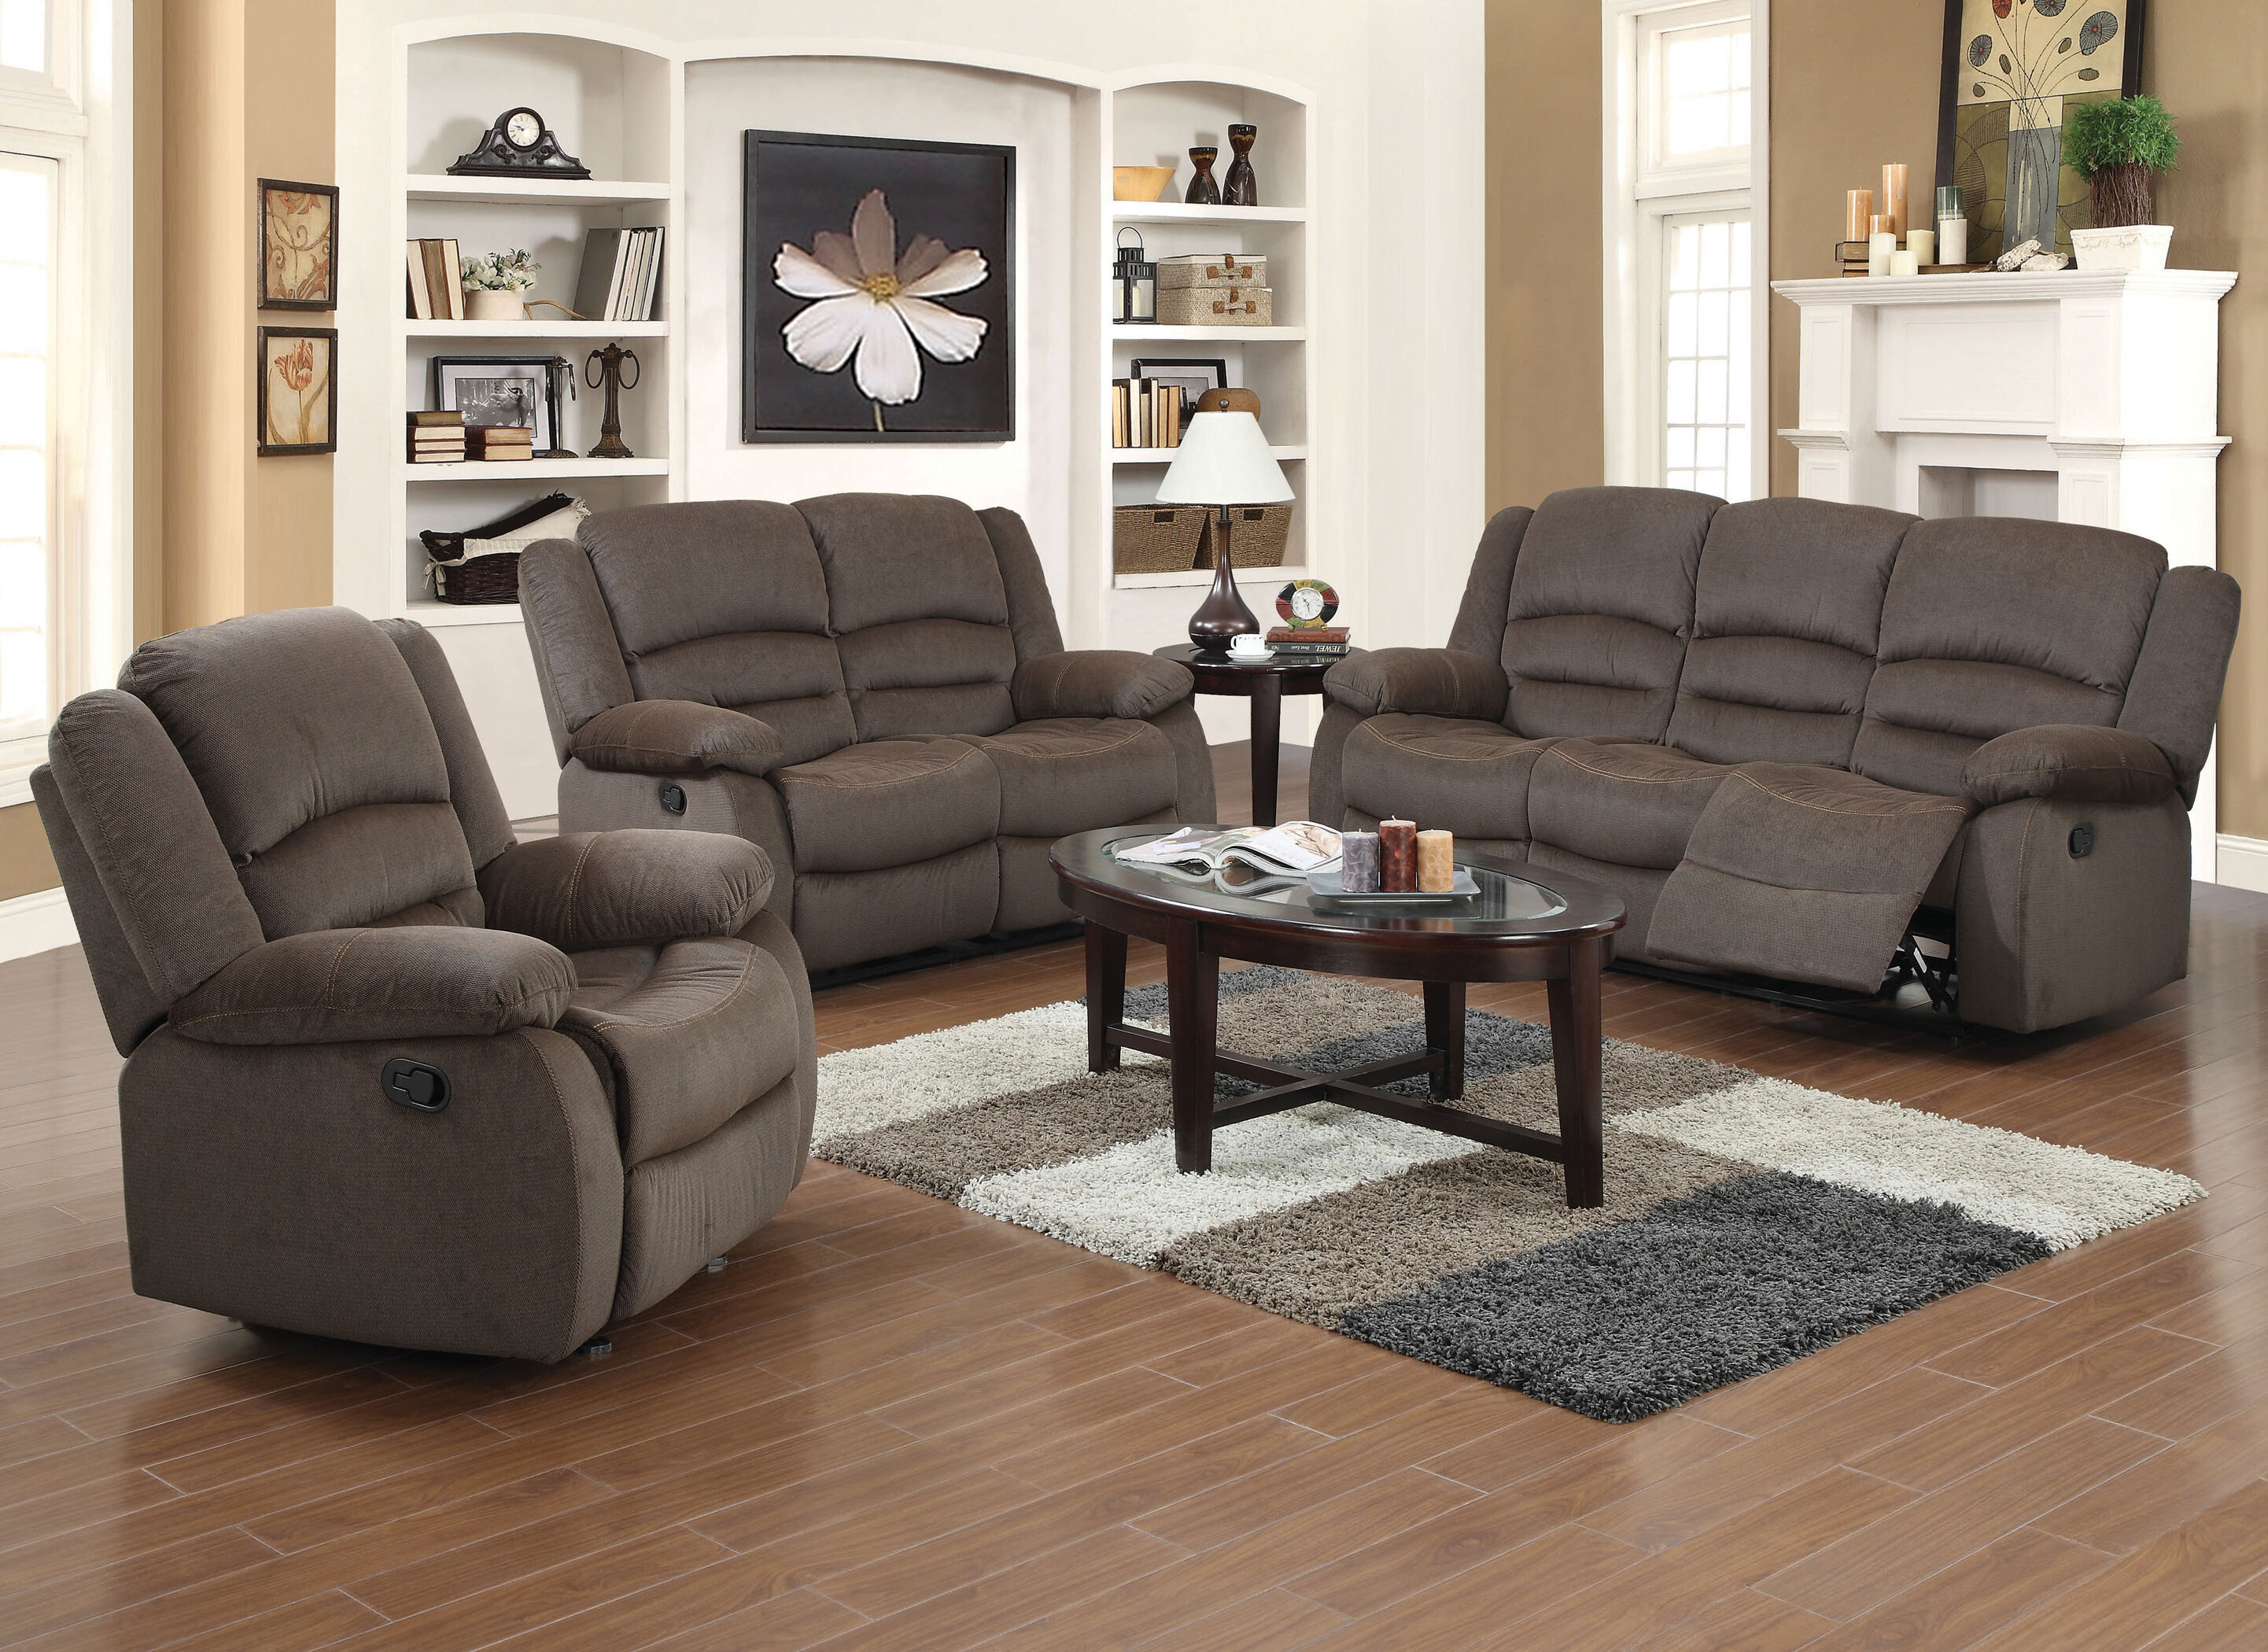 Red Barrel Studio Maxine 3 Piece Living Room Set U0026 Reviews | Wayfair